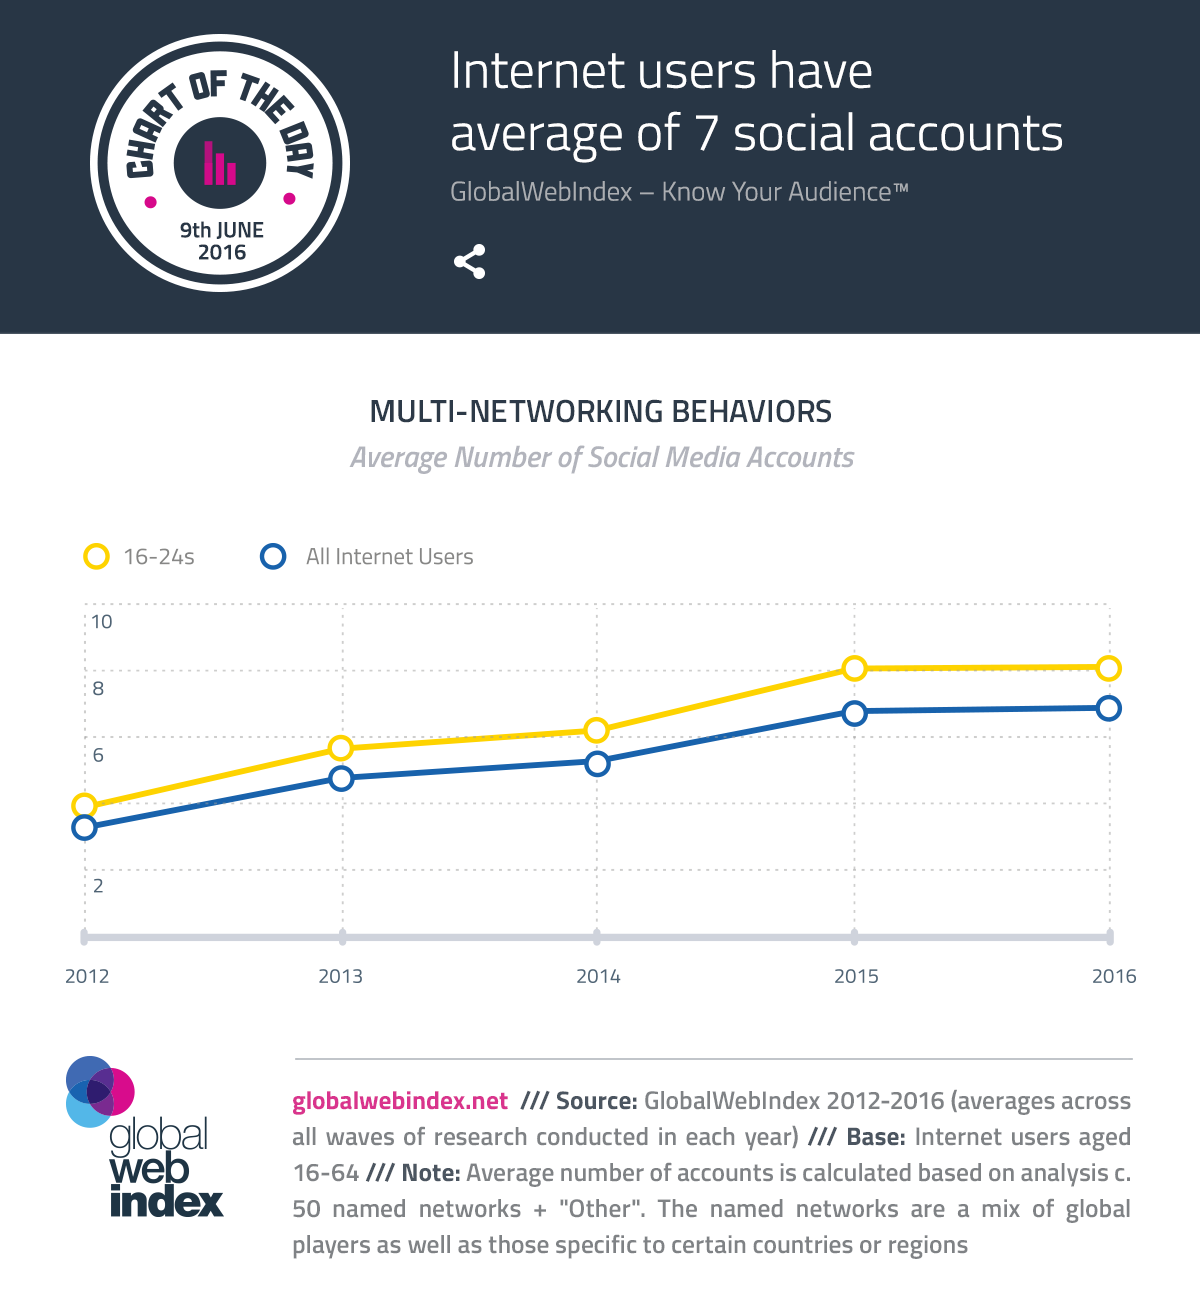 Internet users have average of 7 social accounts